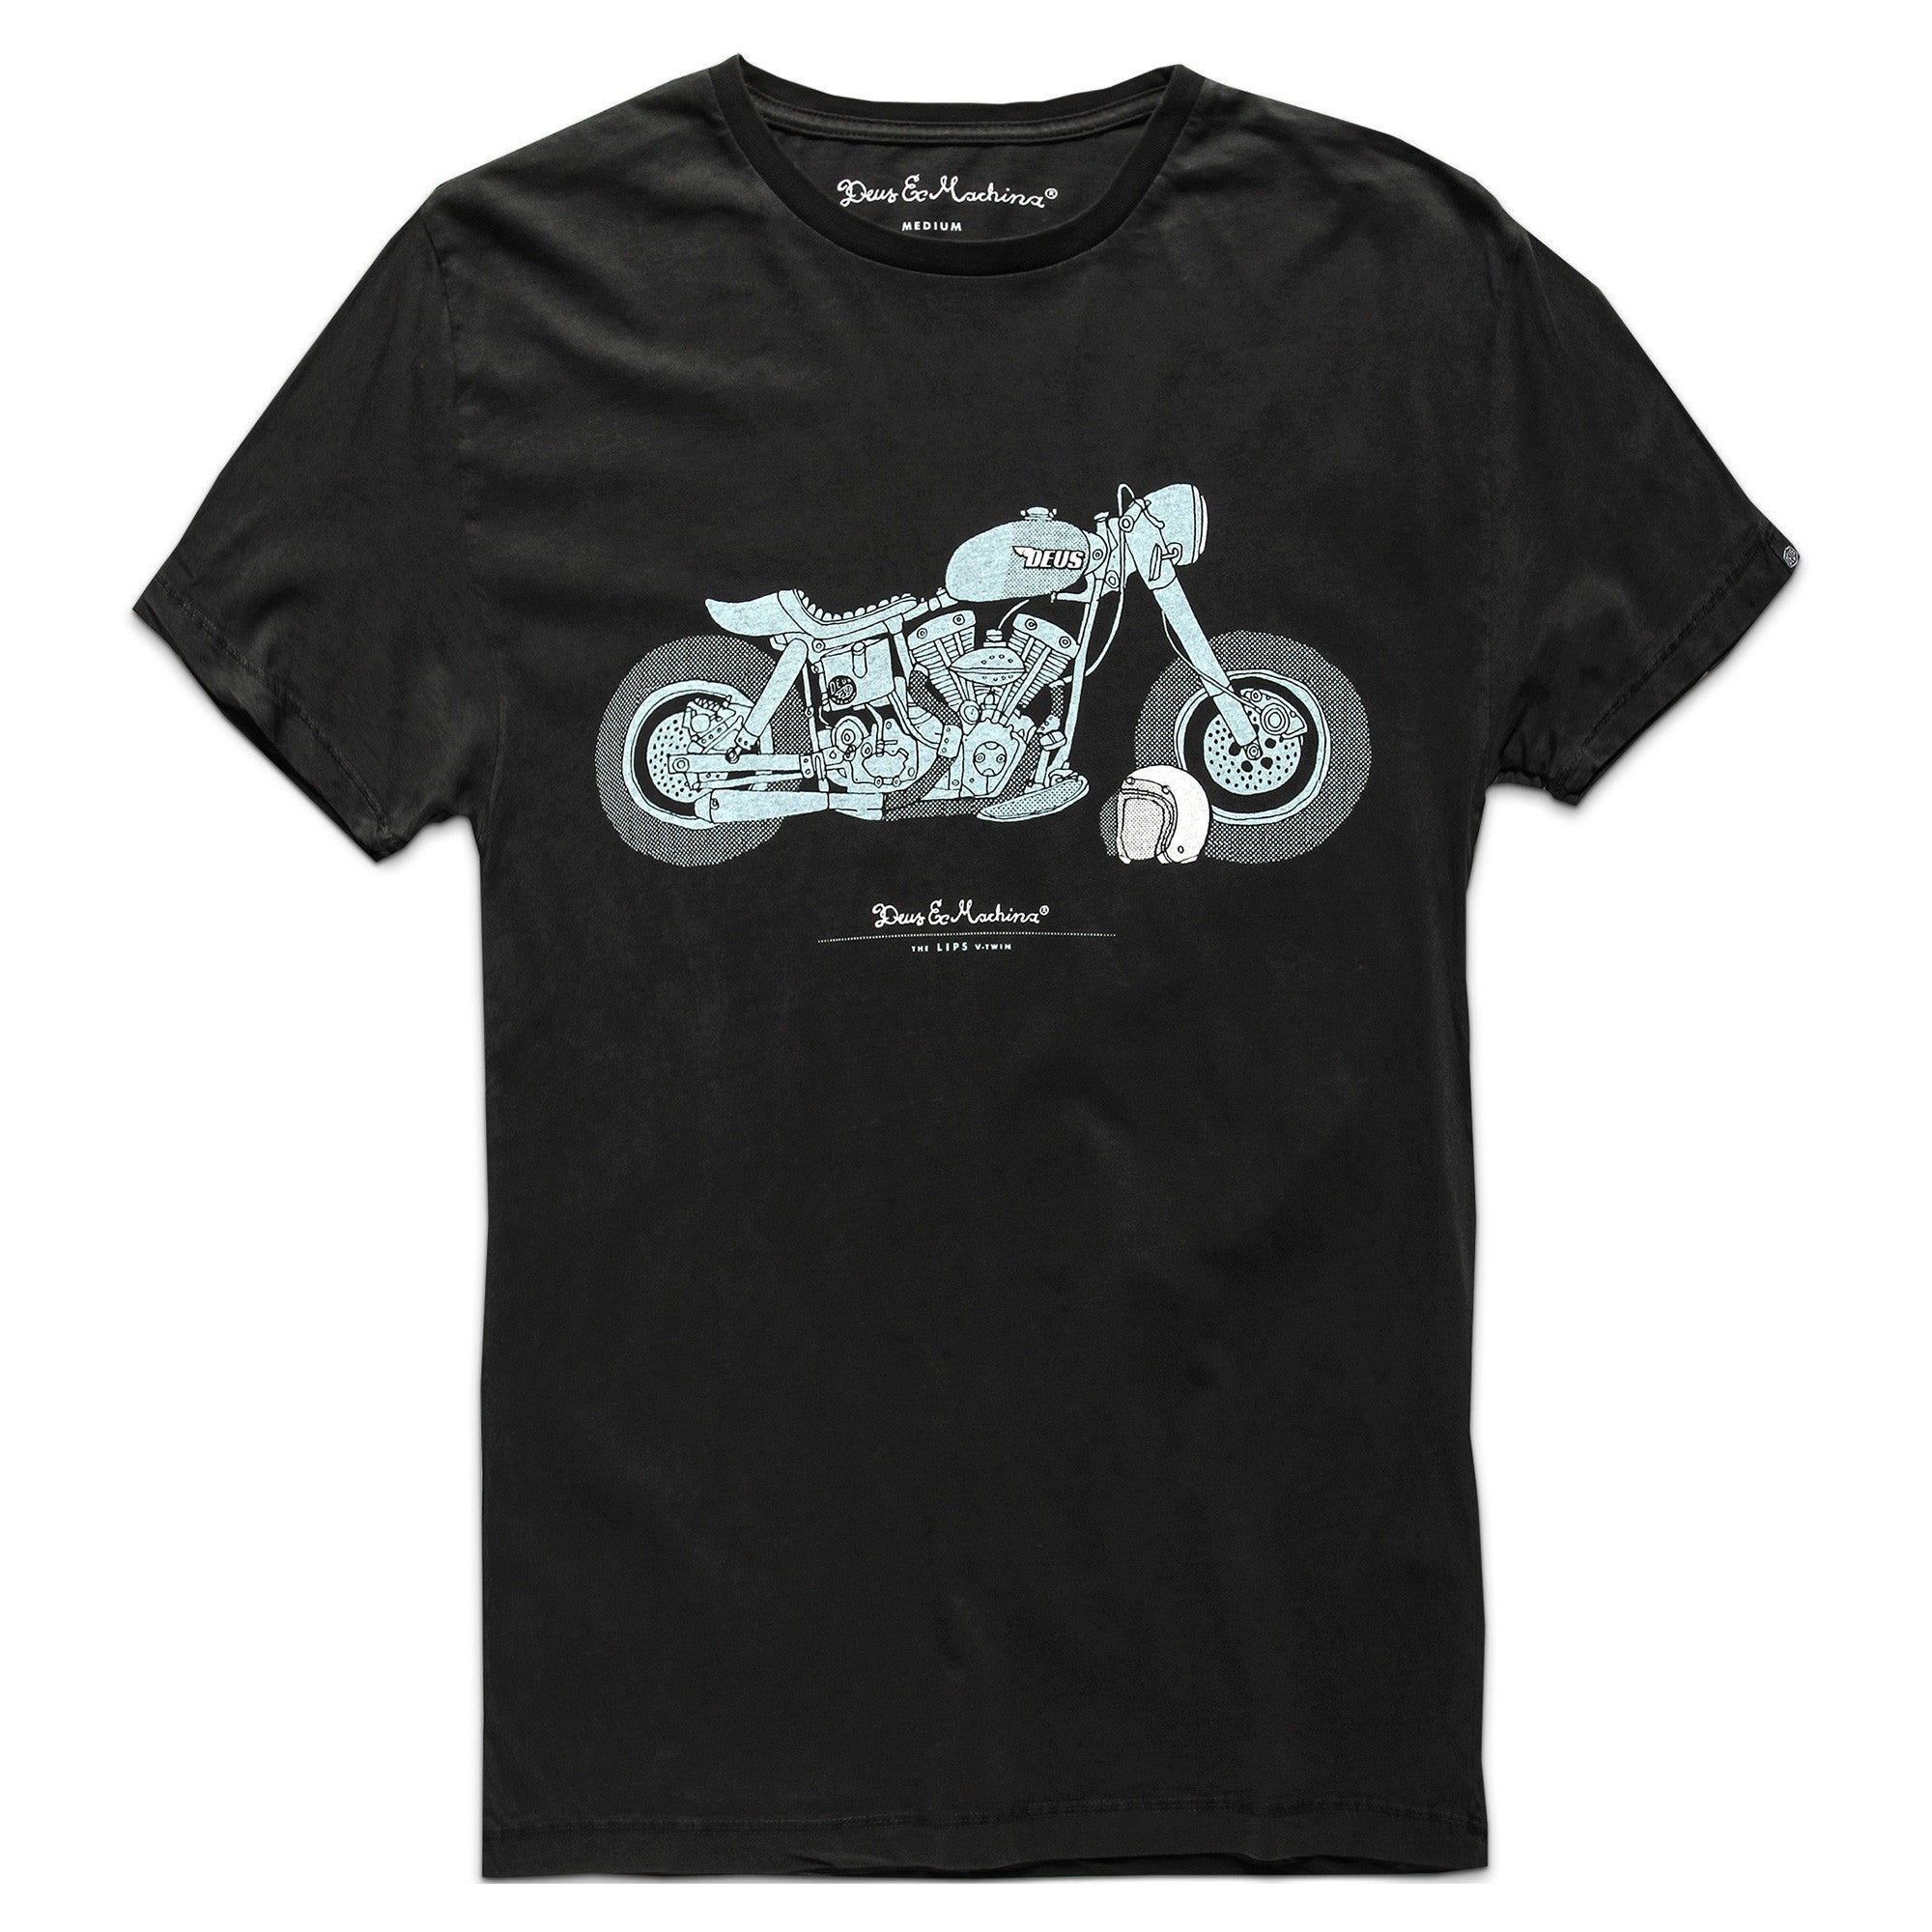 Tees Deus Ex Machina Motorcycles 1 Tshirt Kaos Raglan The Lips 1249 Classic